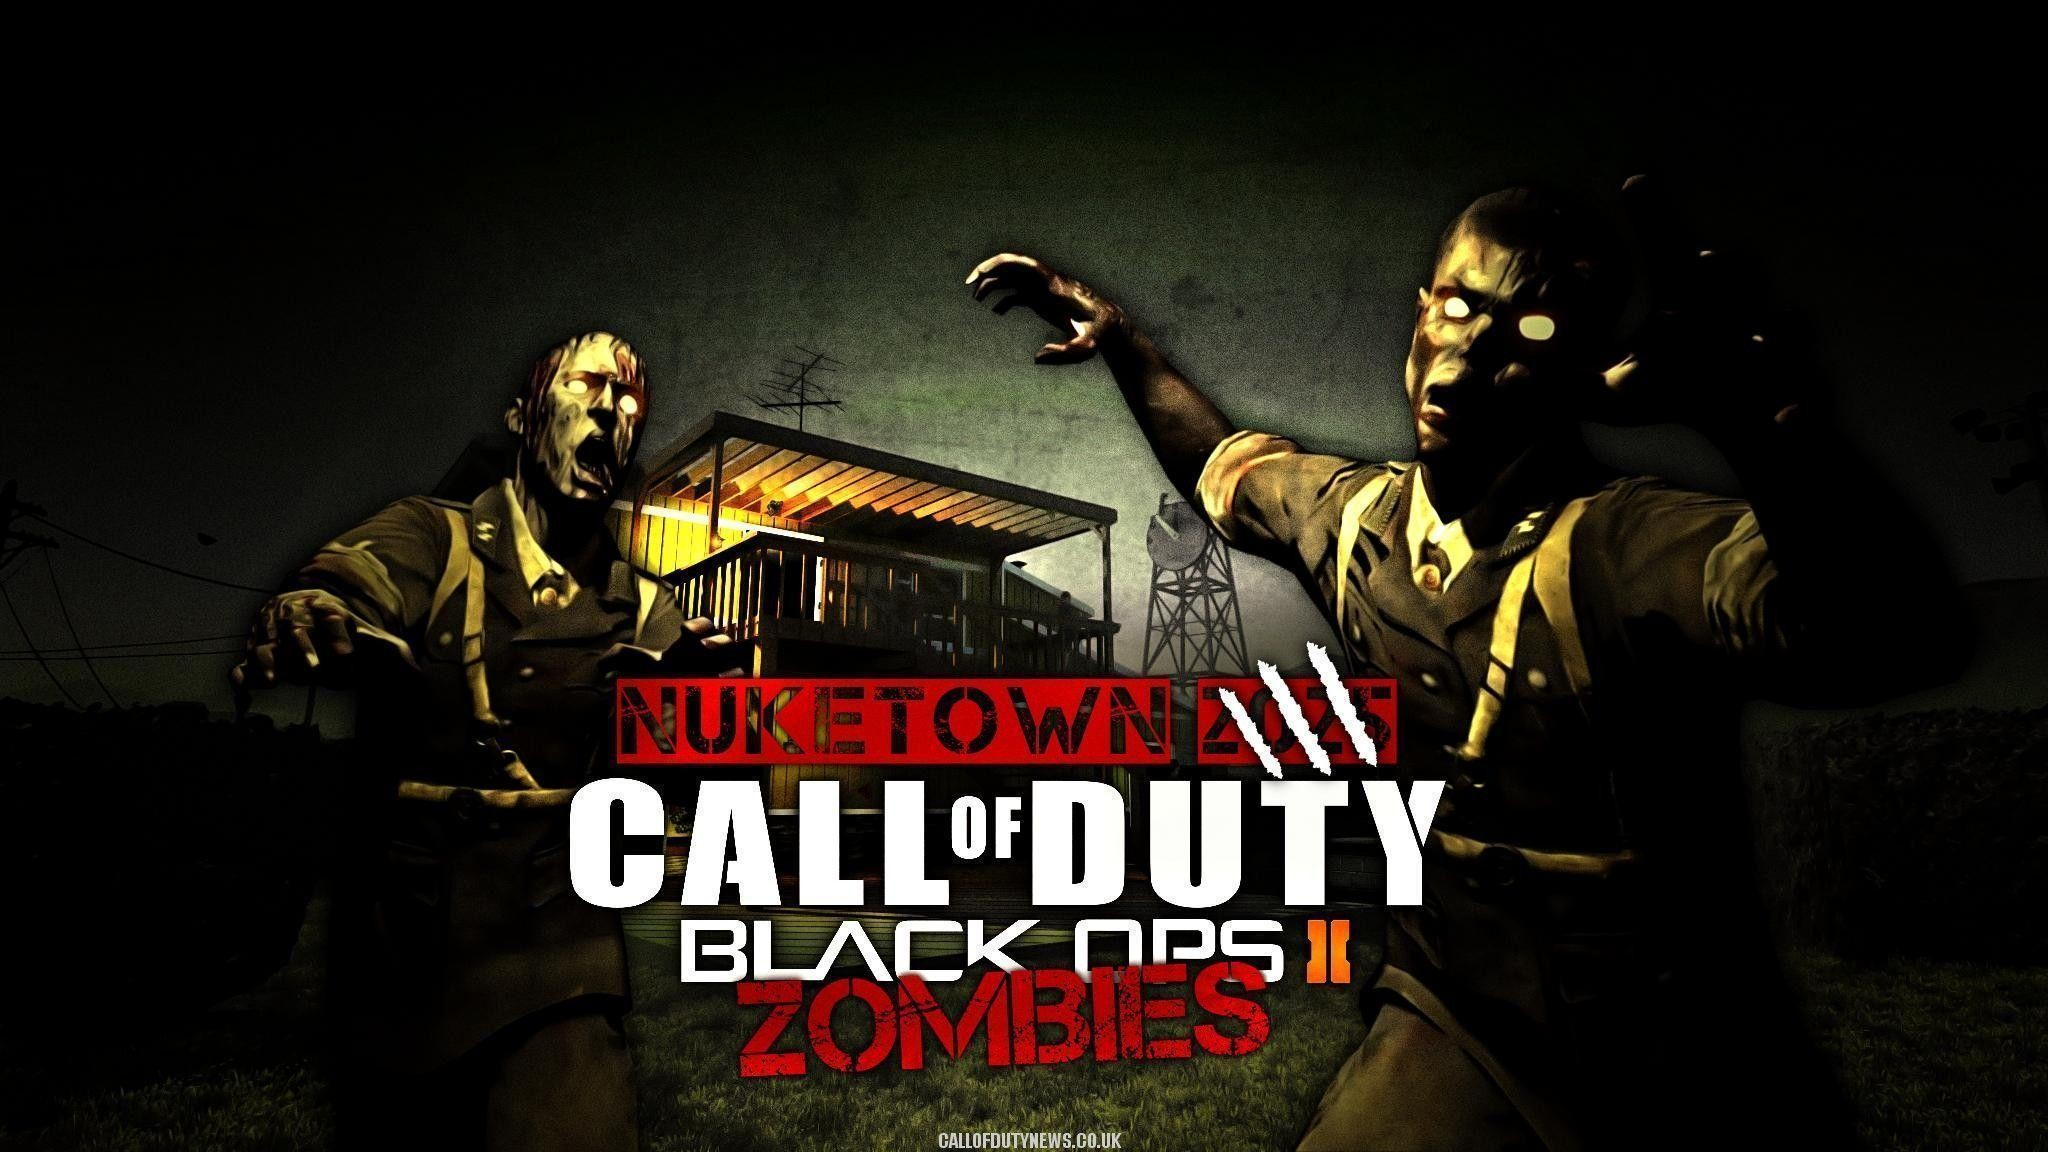 2048x1152 Call of Duty Black Ops 2 Zombie Exclusive HD Wallpapers #